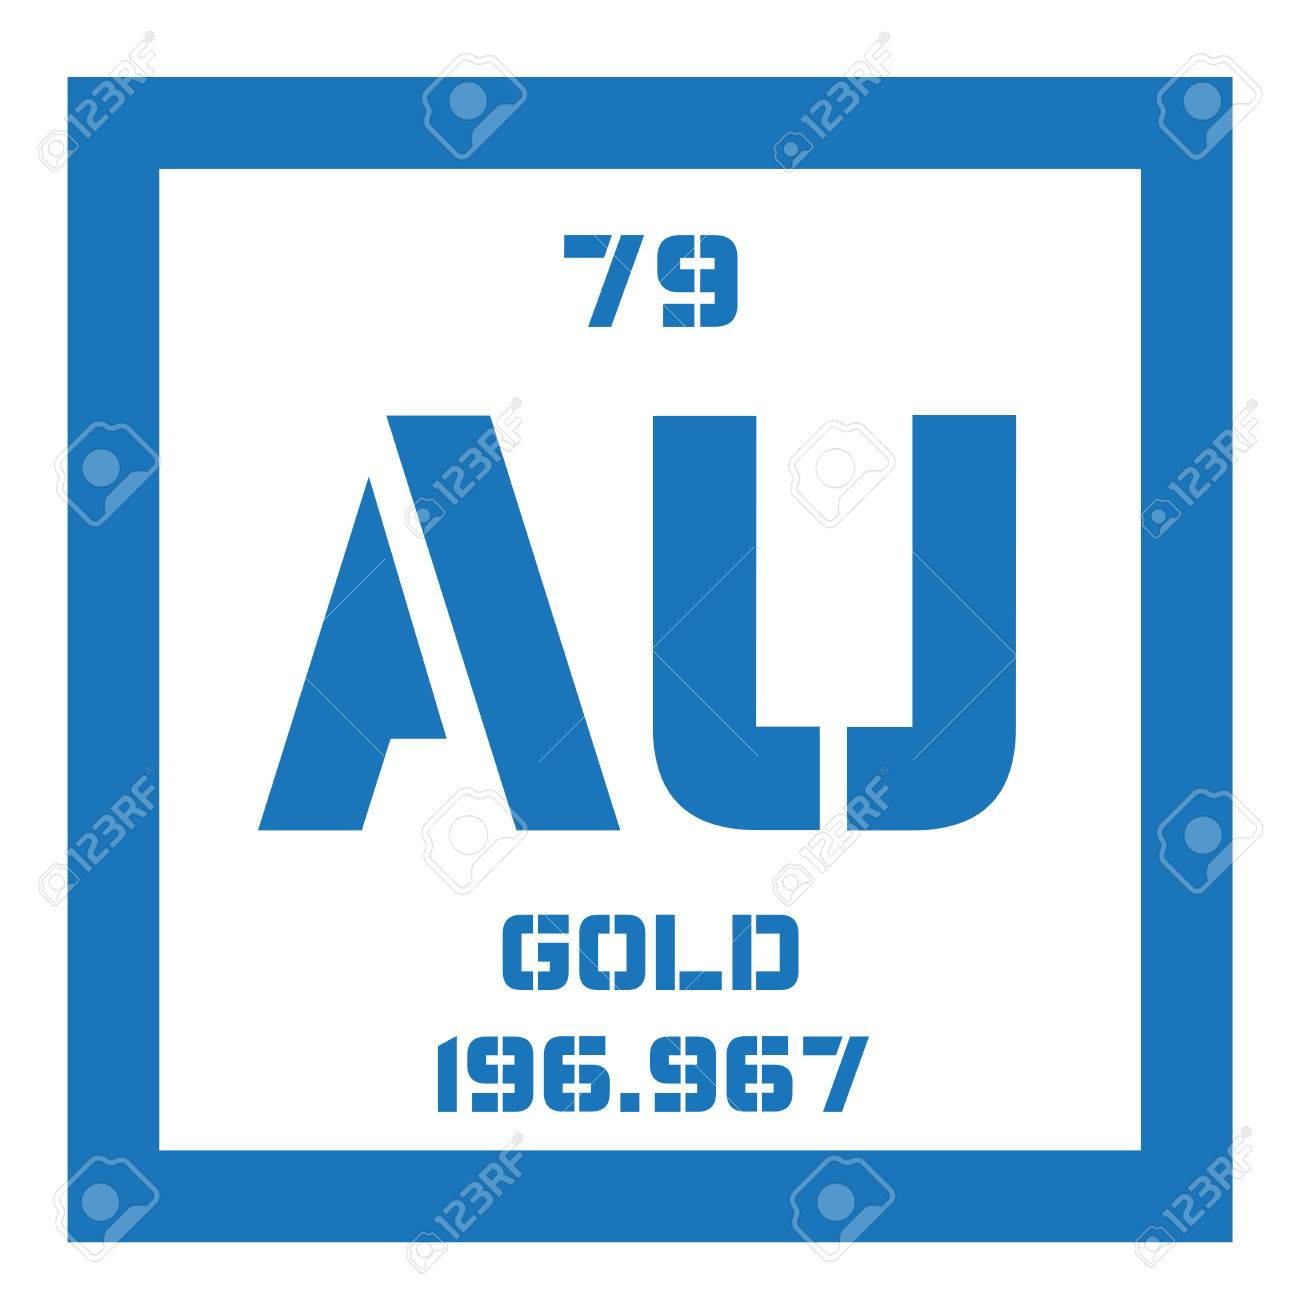 Gold chemical element one of the least reactive chemical elements gold chemical element one of the least reactive chemical elements colored icon with atomic gamestrikefo Image collections